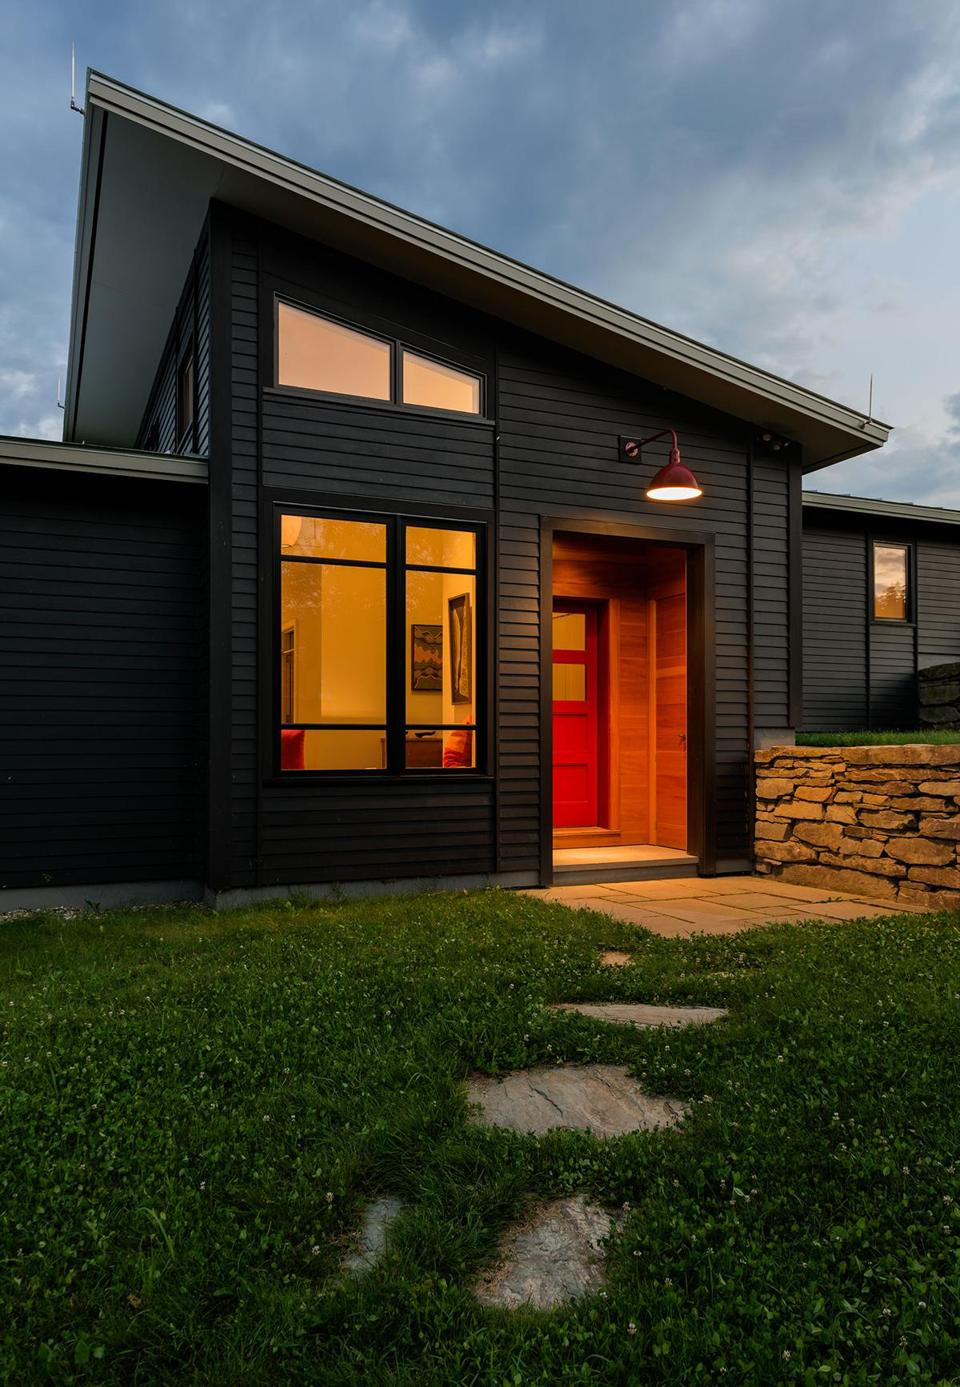 Below: Like the pergola, the front door is painted to match the Barn Light Electric Company sconce. The color, which references traditional New England barns, pops against the home's black clapboard siding.